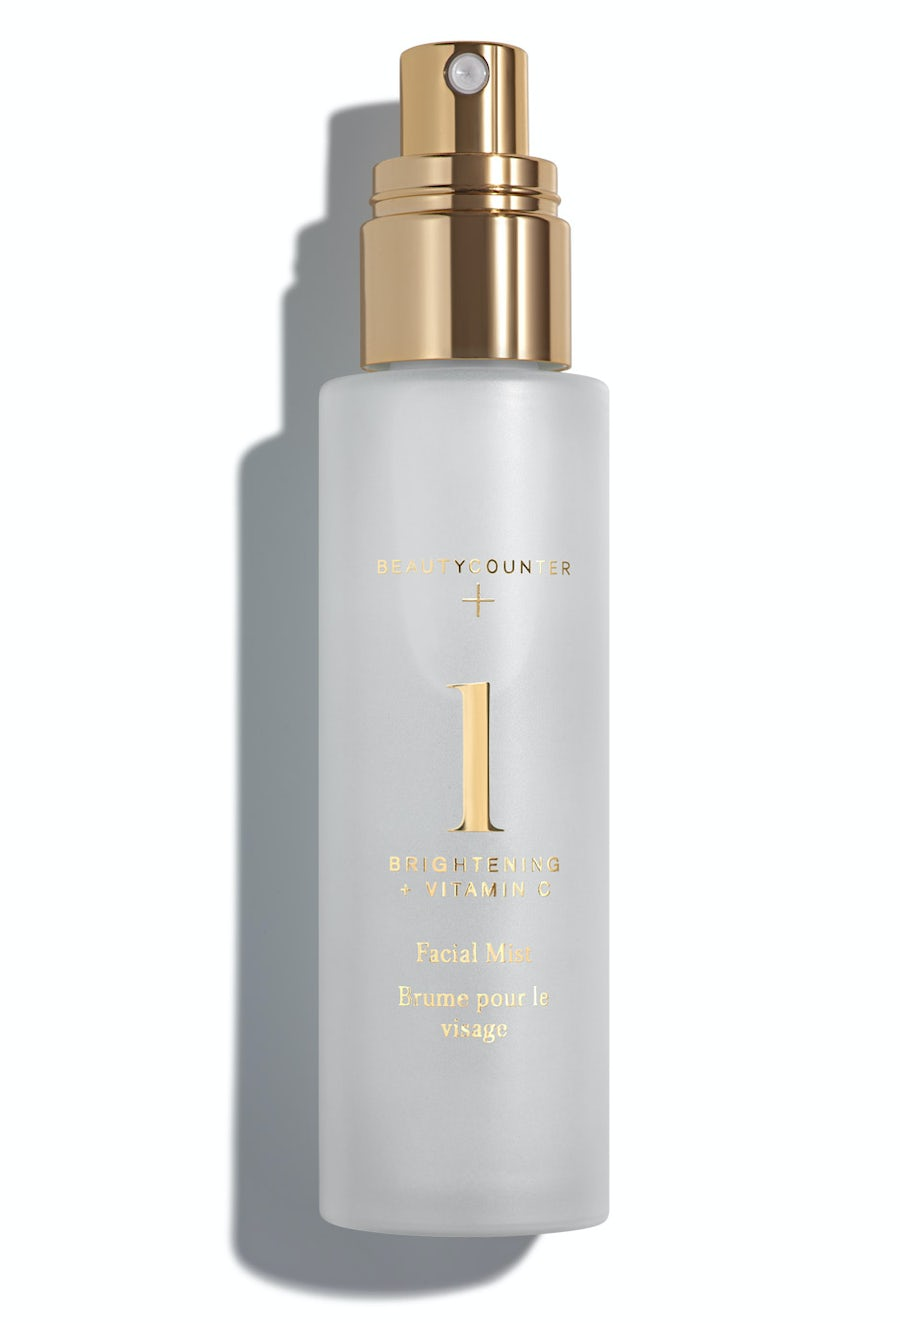 No. 1 Brightening Facial Mist